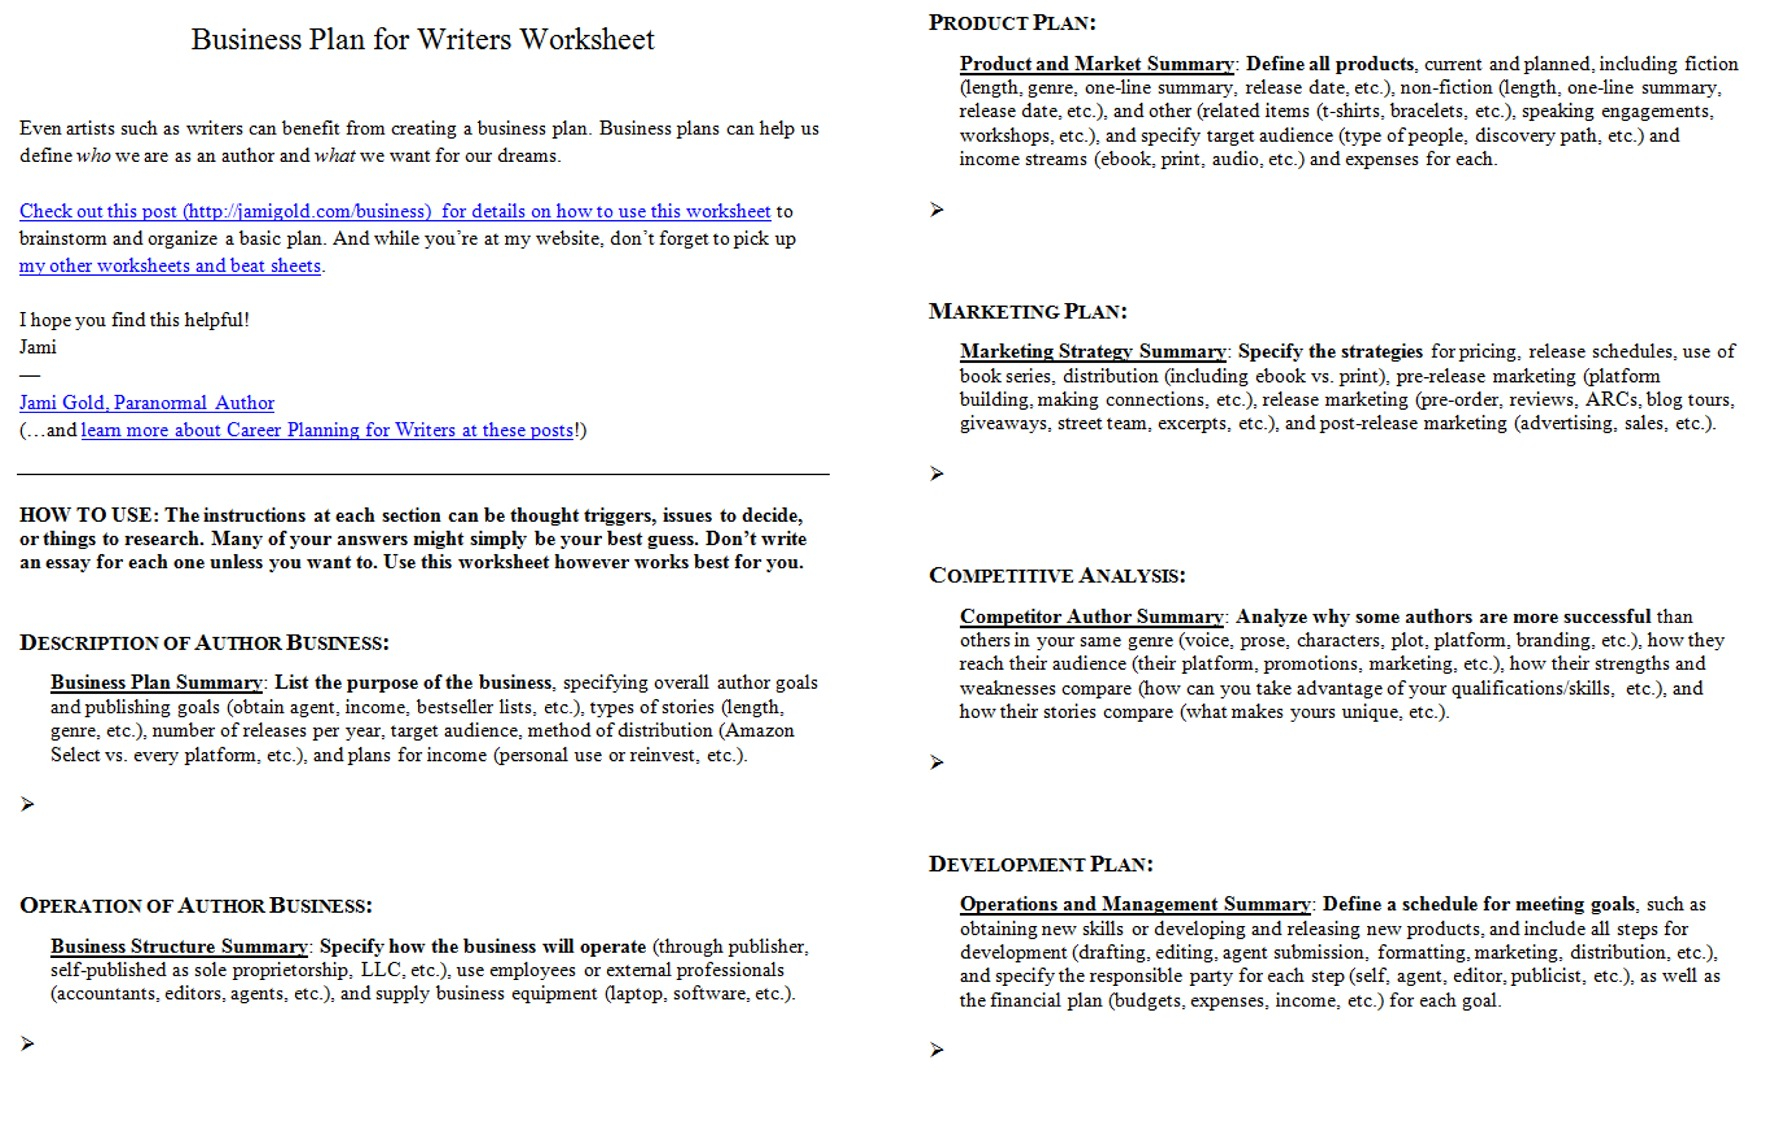 Aldiablosus  Nice Worksheets For Writers  Jami Gold Paranormal Author With Gorgeous Screen Shot Of Both Pages Of The Business Plan For Writers Worksheet With Charming Leadership Worksheet Also Science Worksheets St Grade In Addition Rules Of Exponents Worksheet Pdf And Bsa Personal Fitness Merit Badge Worksheet As Well As Ionic And Covalent Compounds Worksheet Answers Additionally Columbus Day Reading Comprehension Worksheets From Jamigoldcom With Aldiablosus  Gorgeous Worksheets For Writers  Jami Gold Paranormal Author With Charming Screen Shot Of Both Pages Of The Business Plan For Writers Worksheet And Nice Leadership Worksheet Also Science Worksheets St Grade In Addition Rules Of Exponents Worksheet Pdf From Jamigoldcom